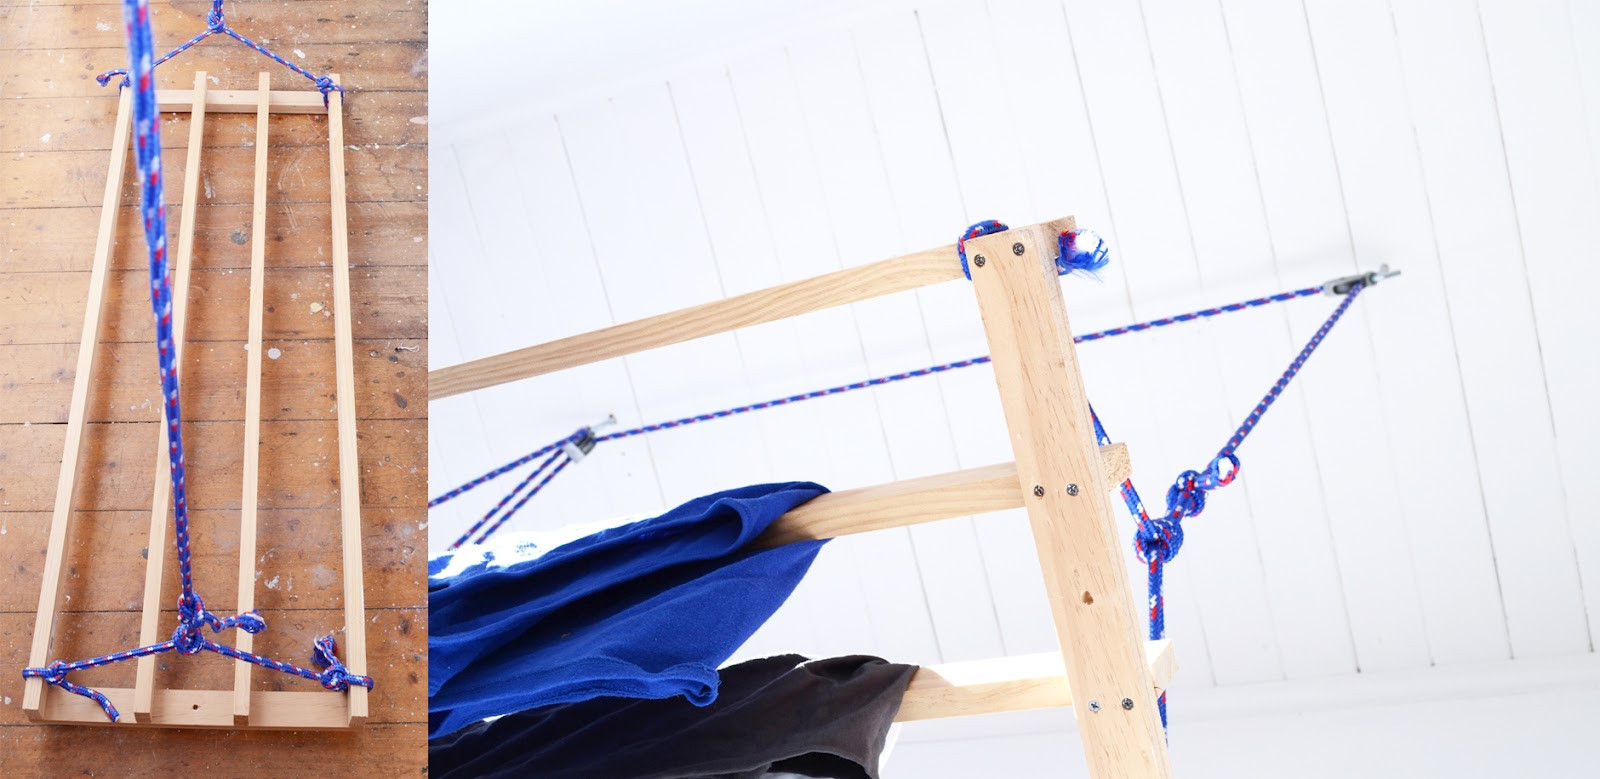 Best ideas about DIY Drying Racks . Save or Pin Red Brick Magazine DIY clothes drying rack Now.